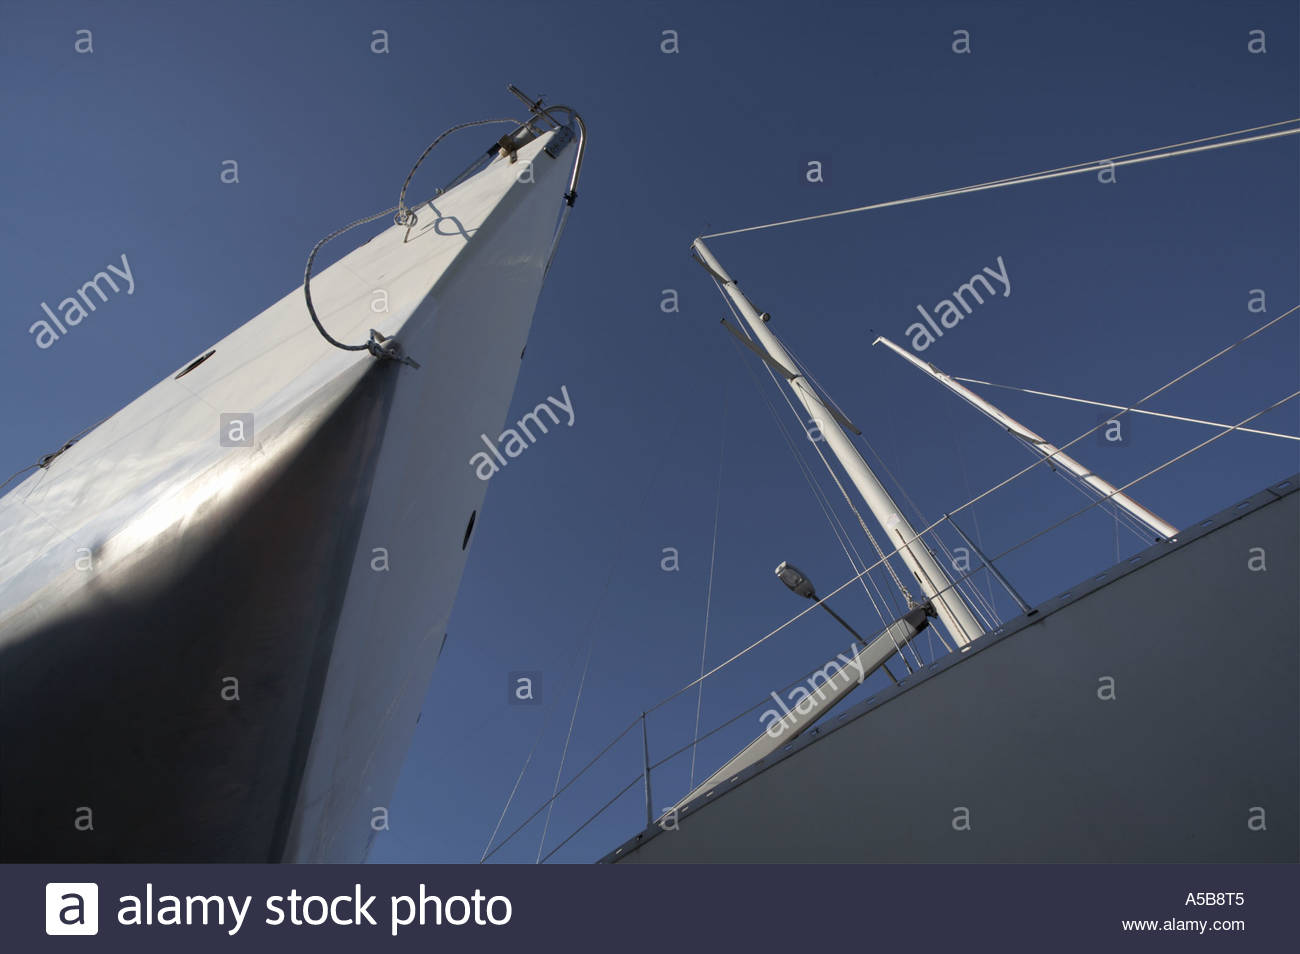 Yacht bow from bellow against clear blue sky - Stock Image